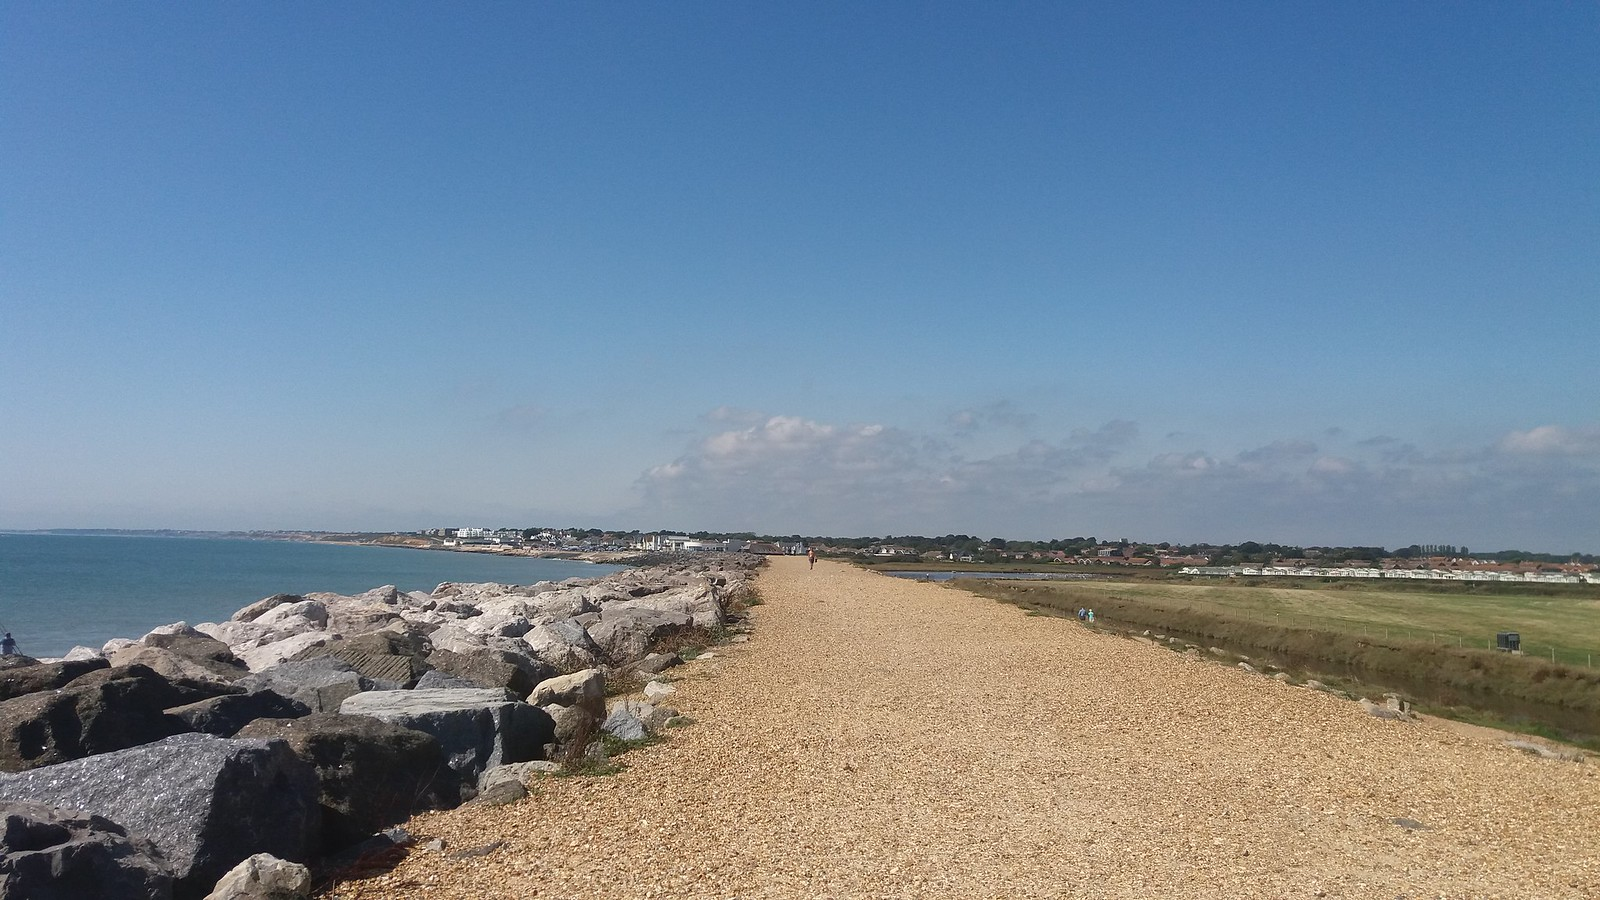 20160907_140715 Hurst Castle spit towards Milford on Sea